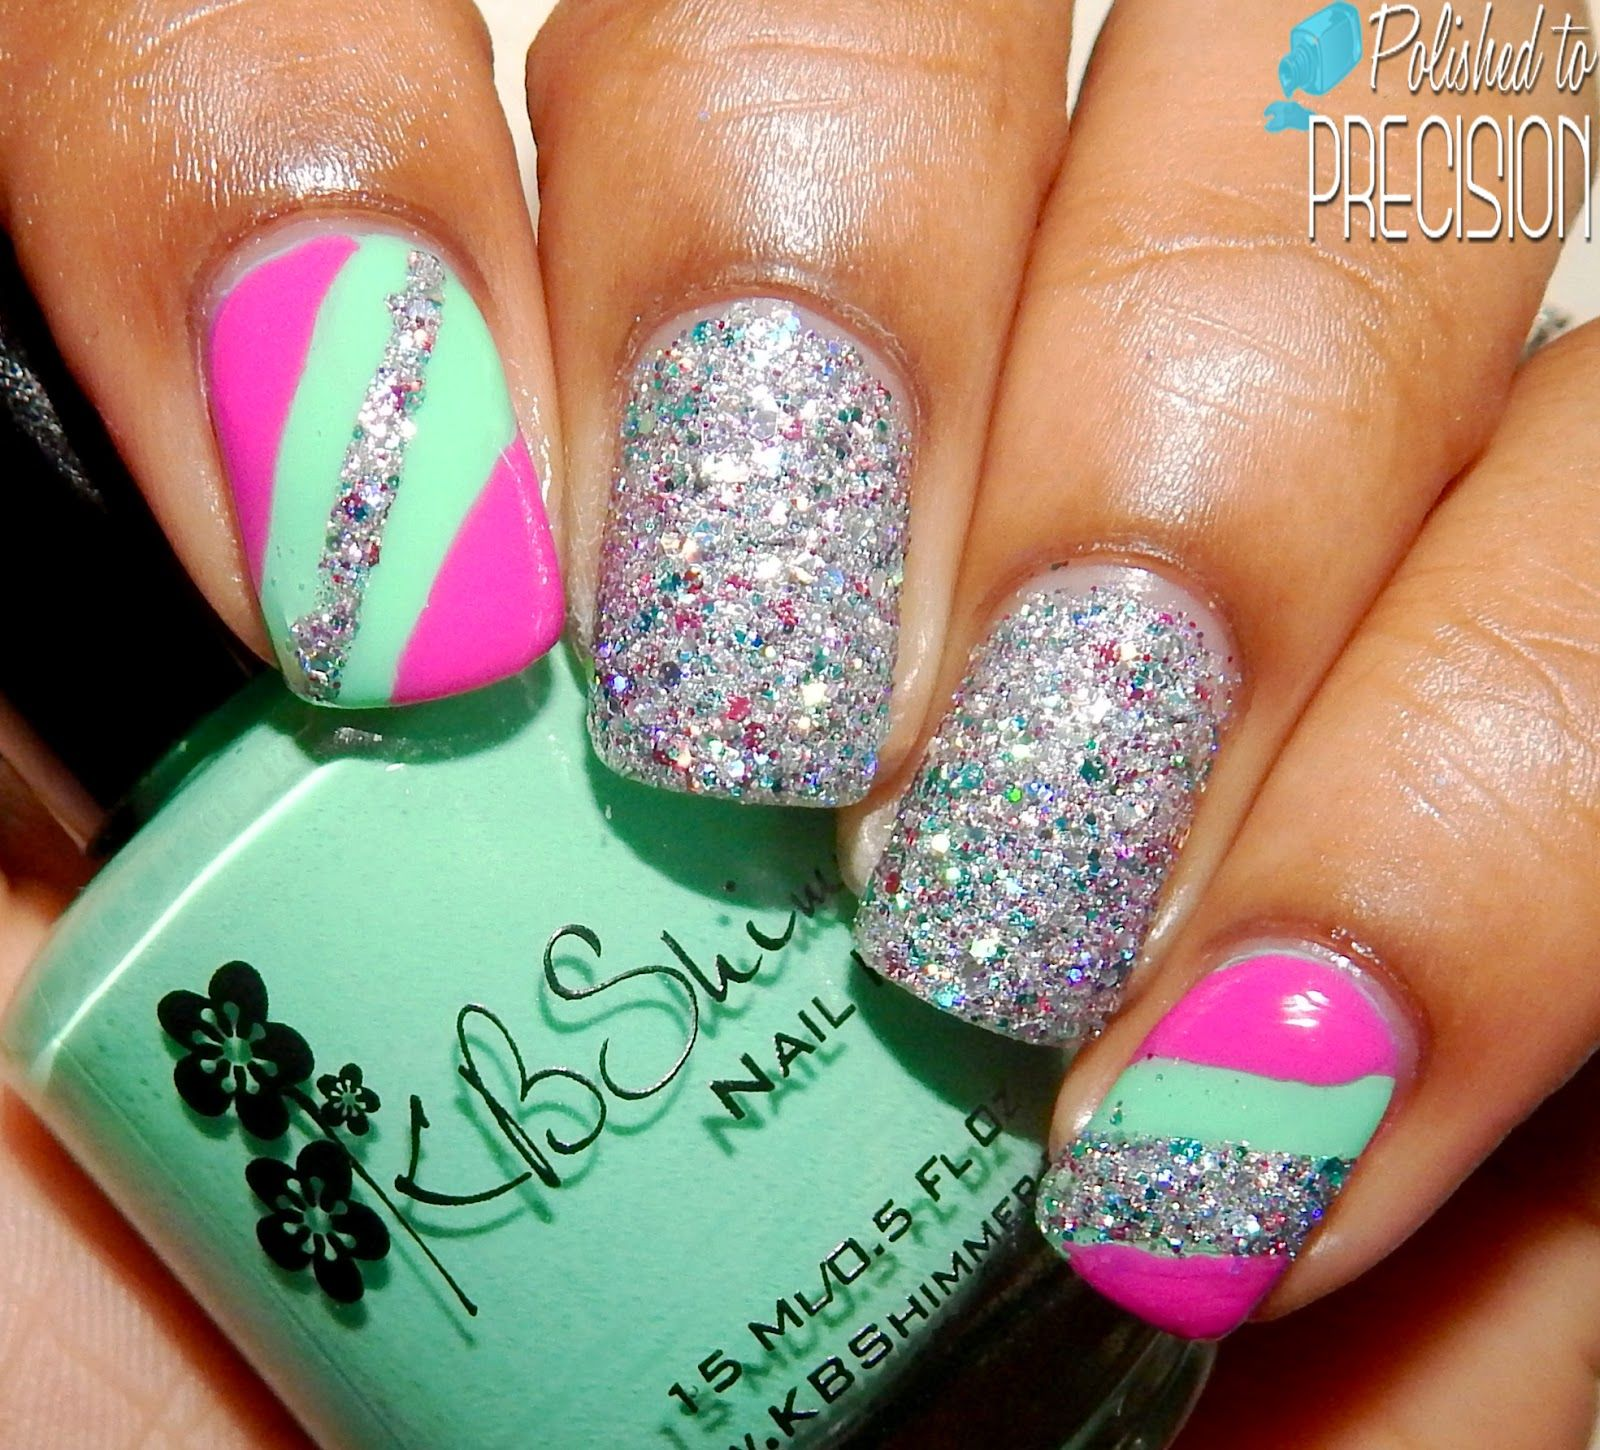 Polished to Precision: KBShimmer 6th Anniversary Celebration Trio ...